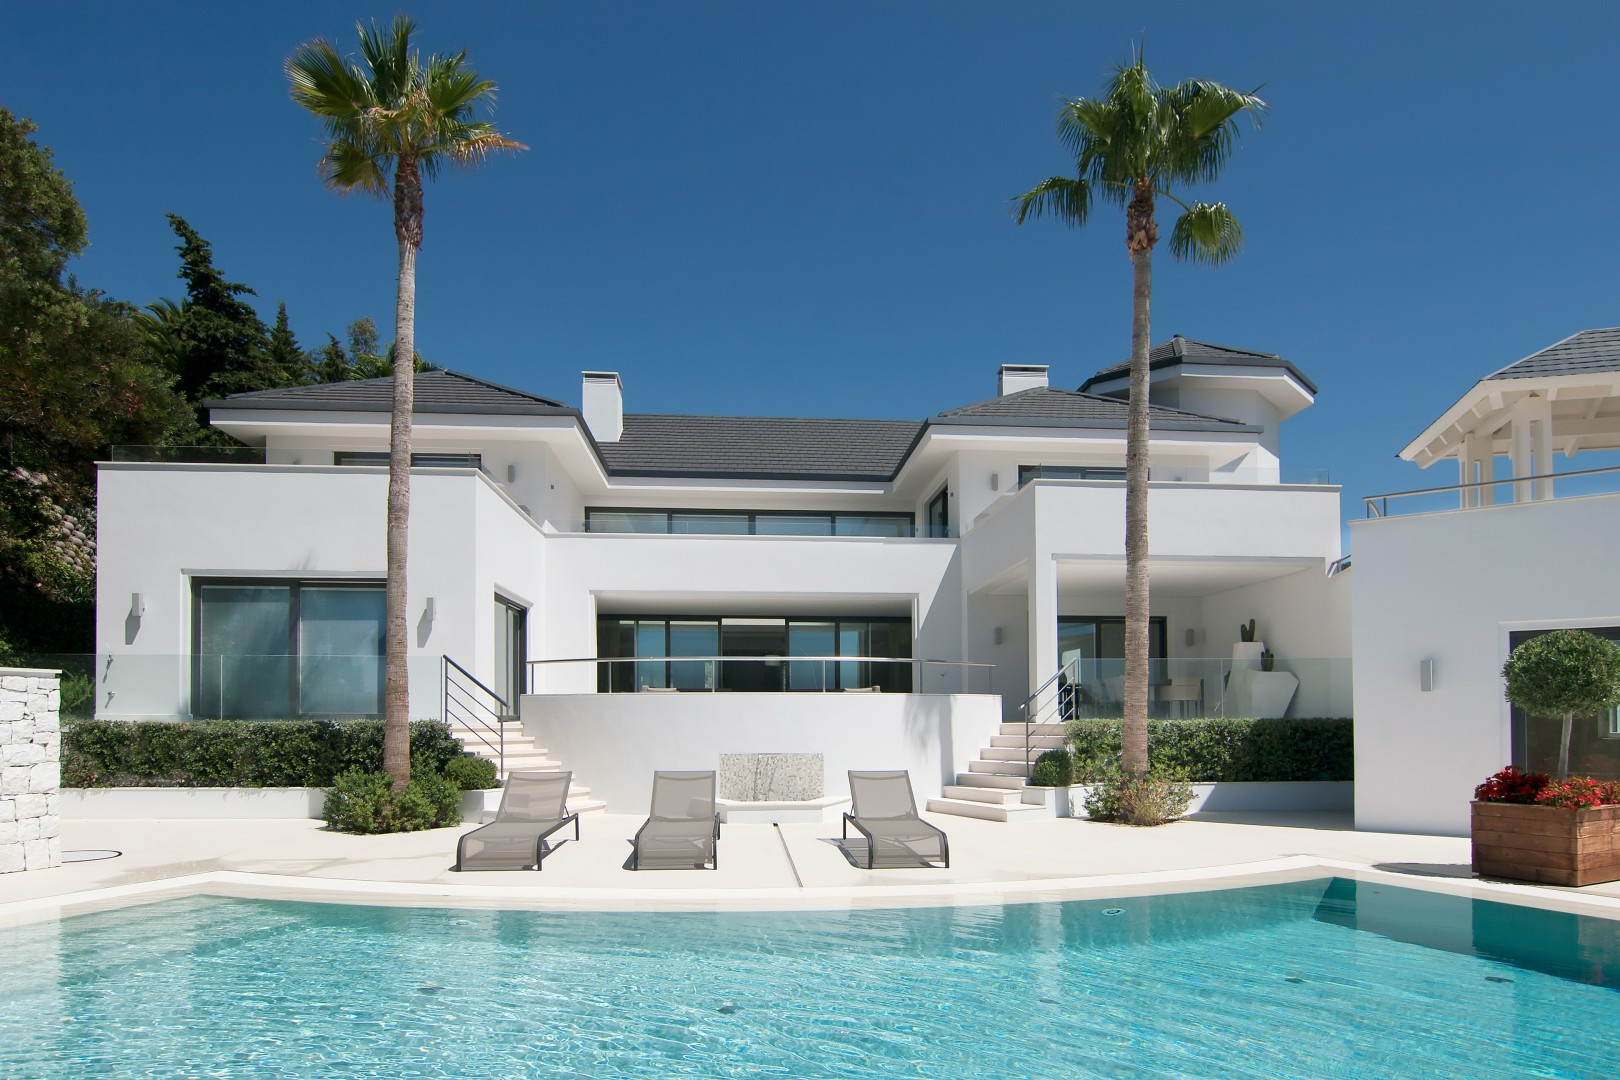 Single Family Home for Sale at Brand new stunning contemporary Villa La Zagaleta Benahavis, Costa Del Sol, 29679 Spain